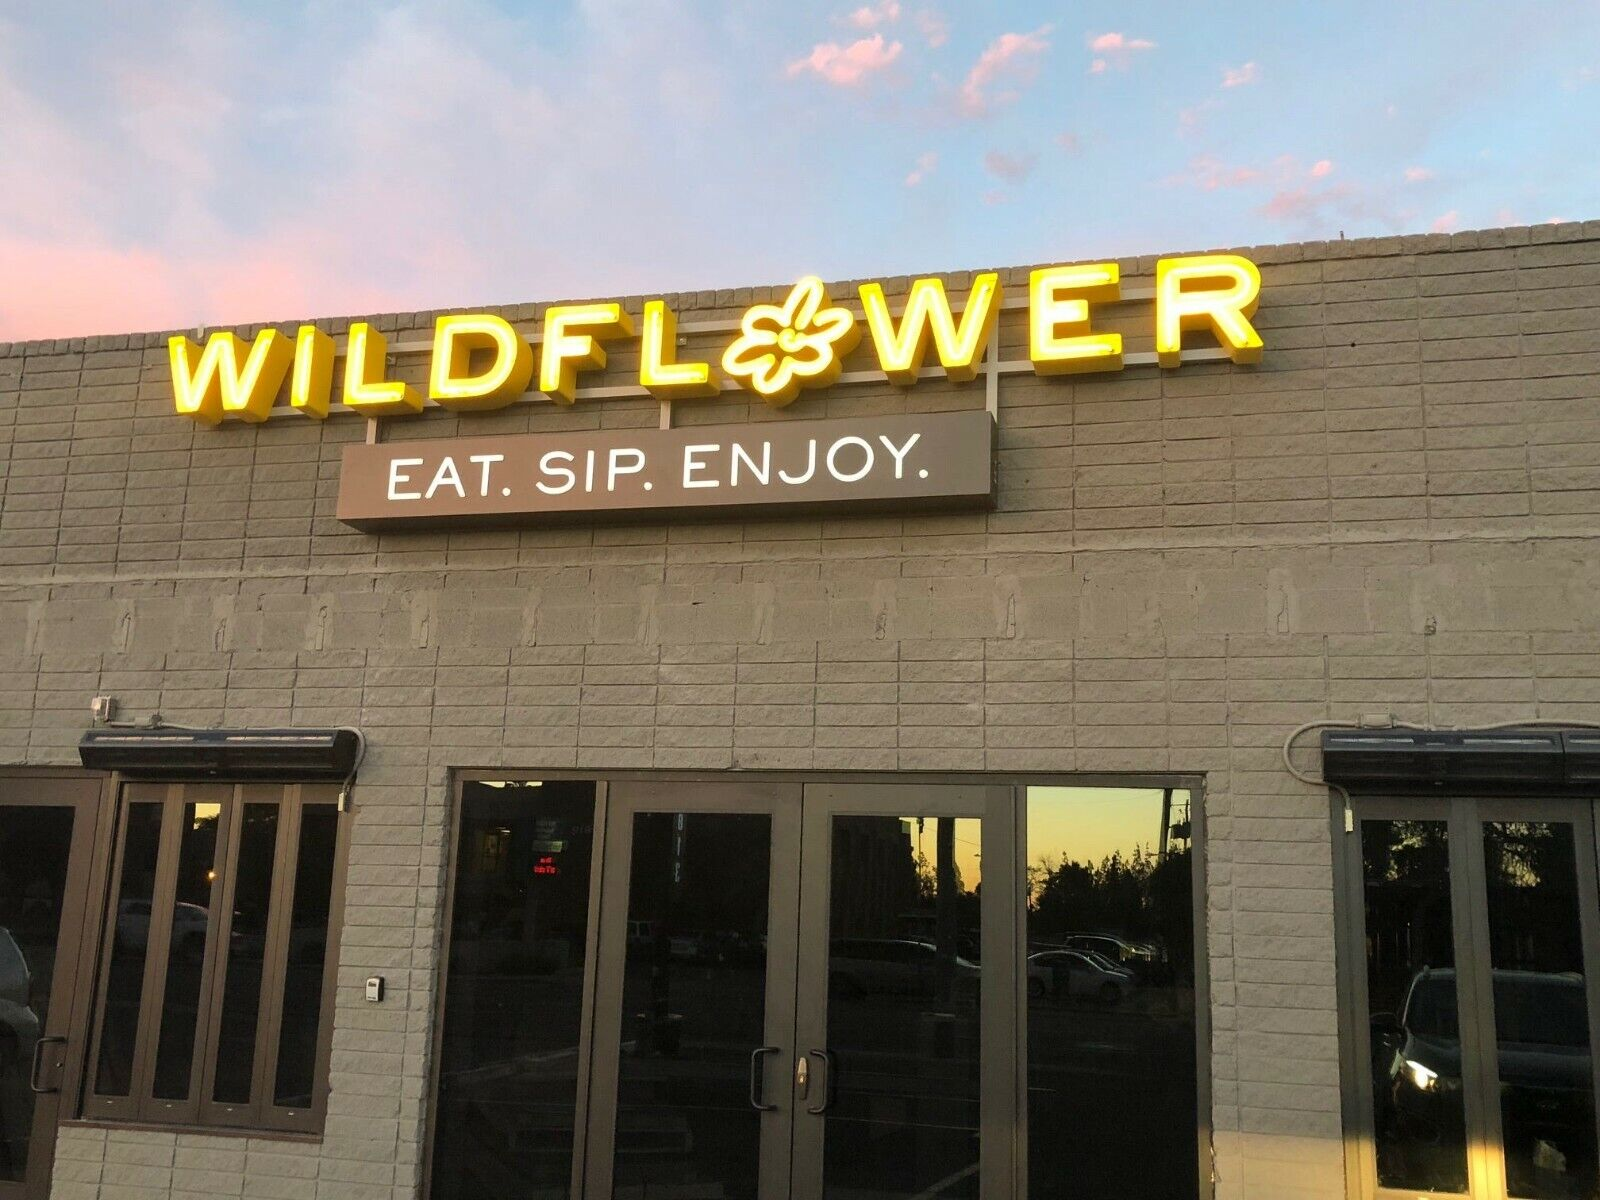 Wildflower Bread Company Gift Card 92.23 - $64.56